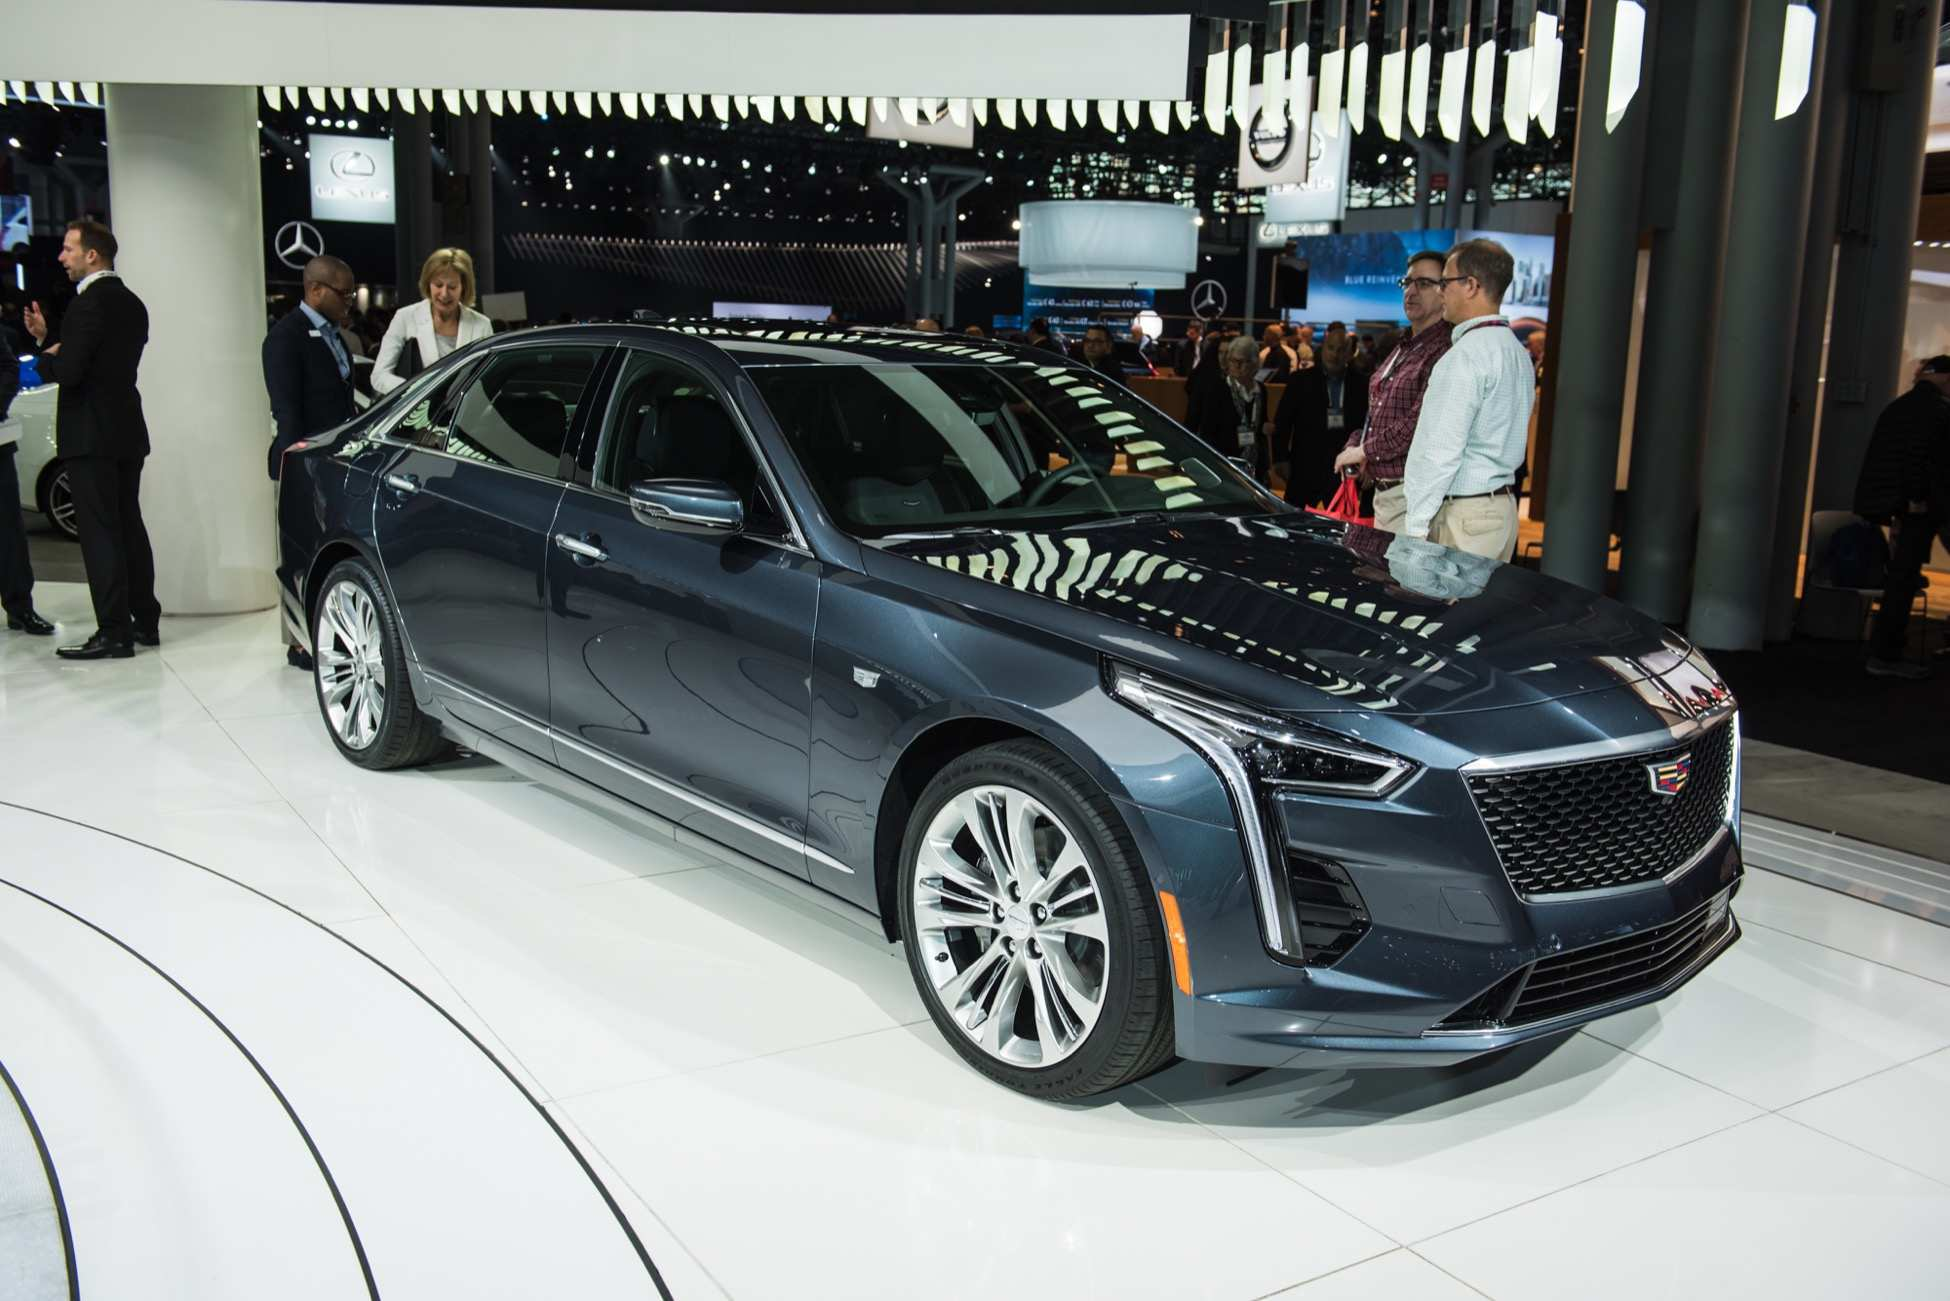 36 New 2019 Cadillac News Specs for 2019 Cadillac News